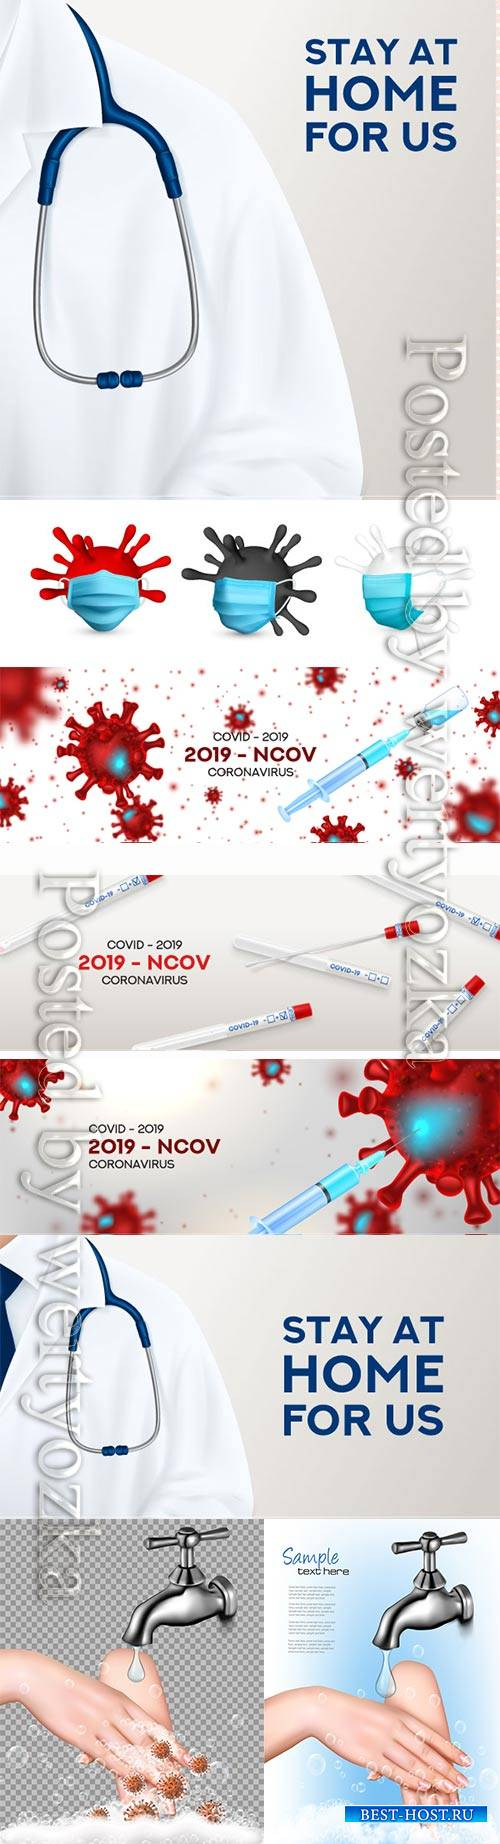 COVID 19, Coranavirus vector illustration sets # 6